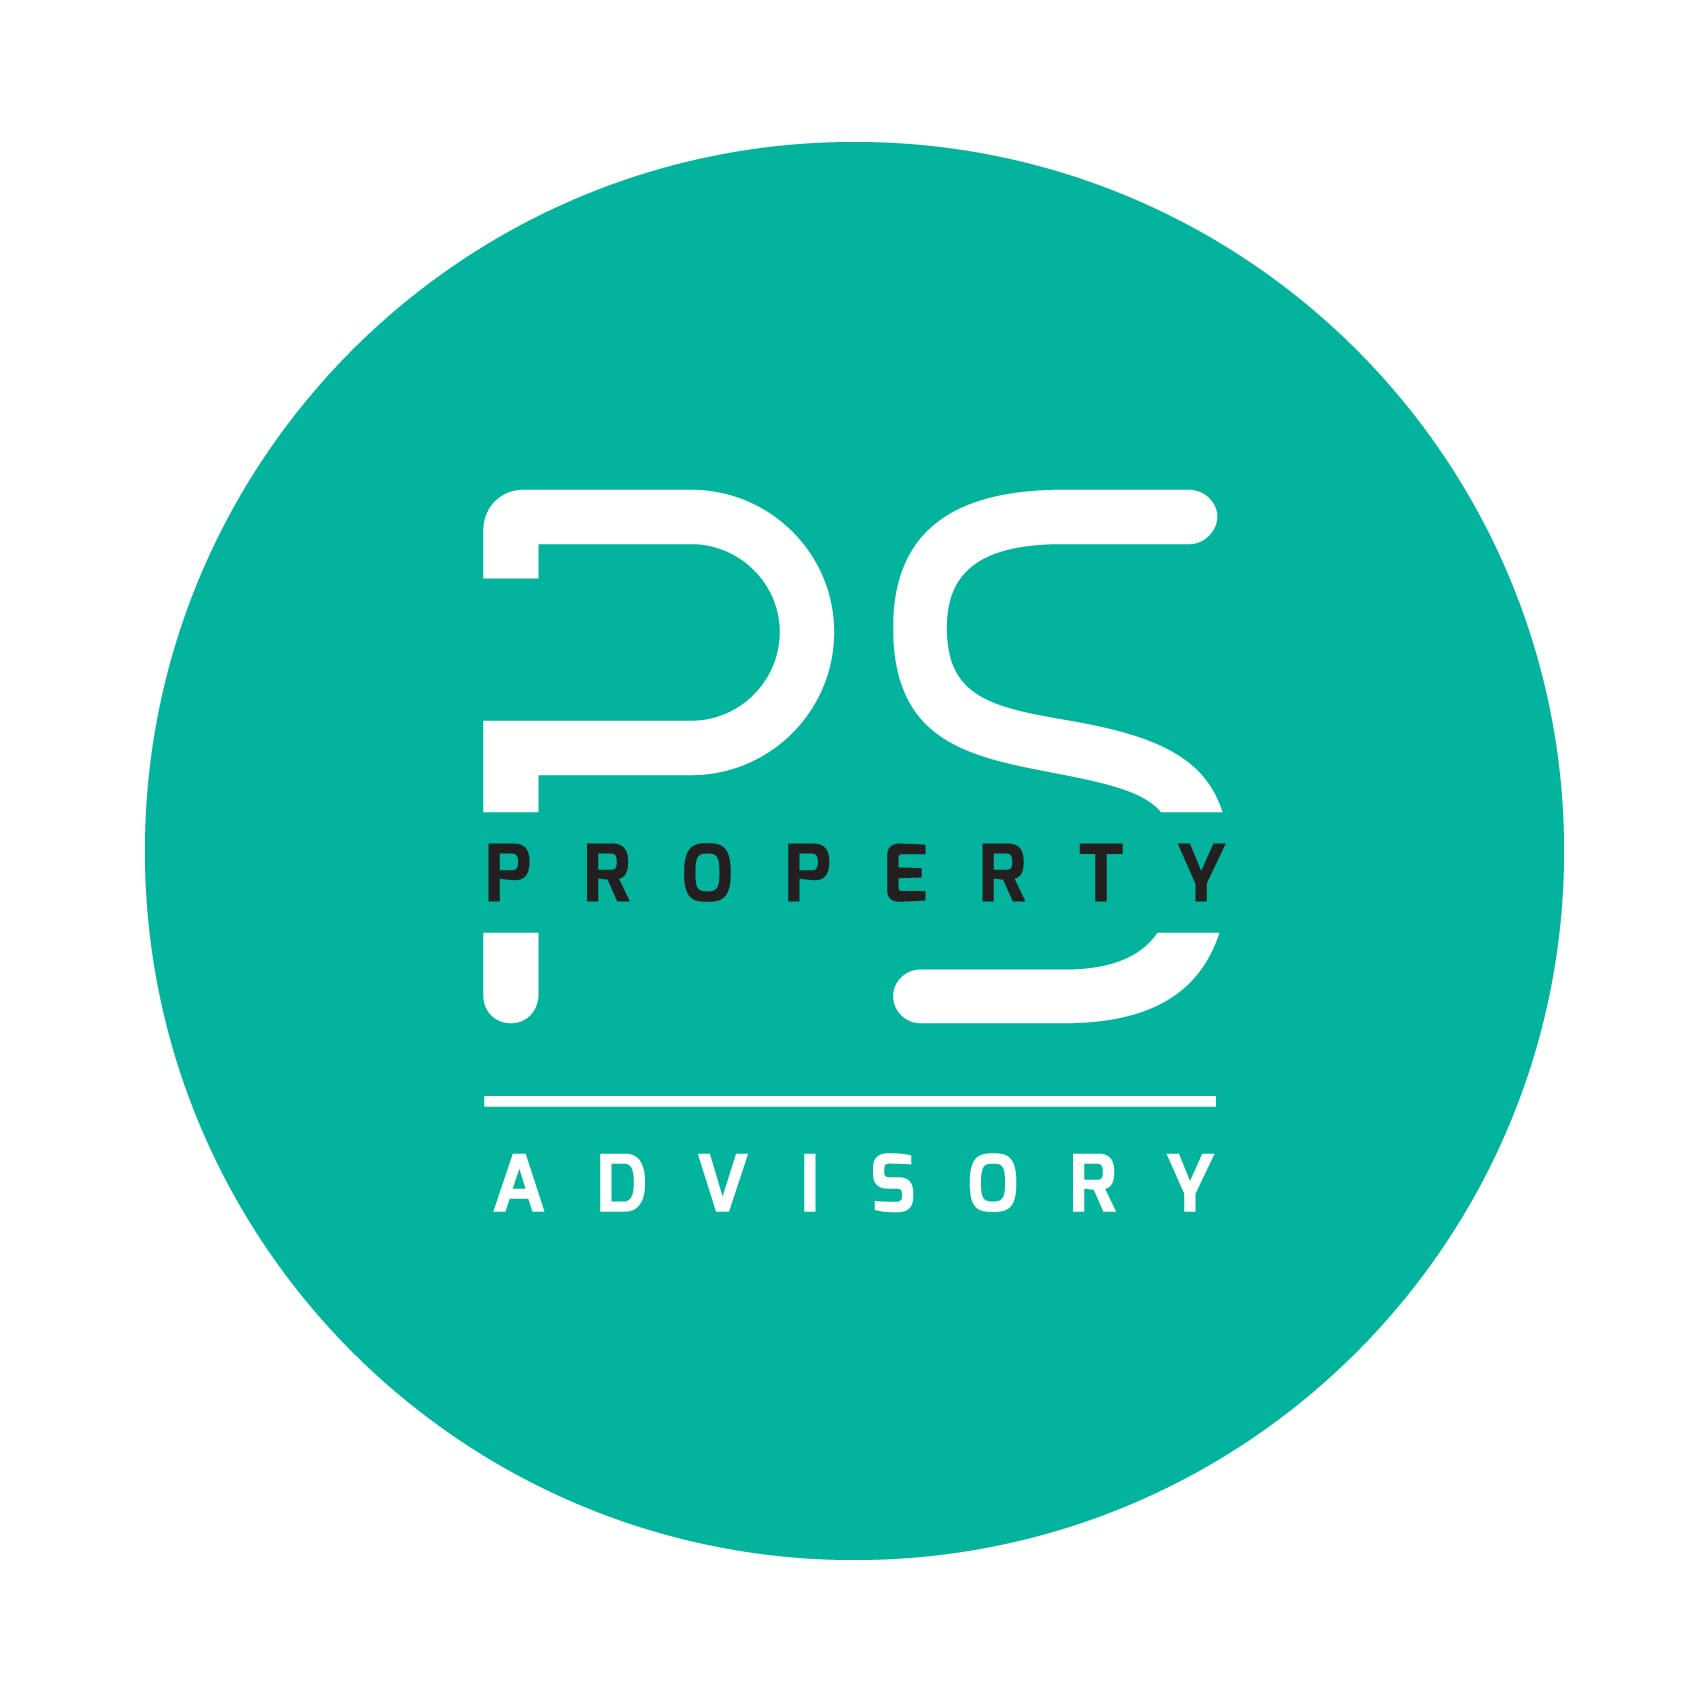 PS Property Advisory